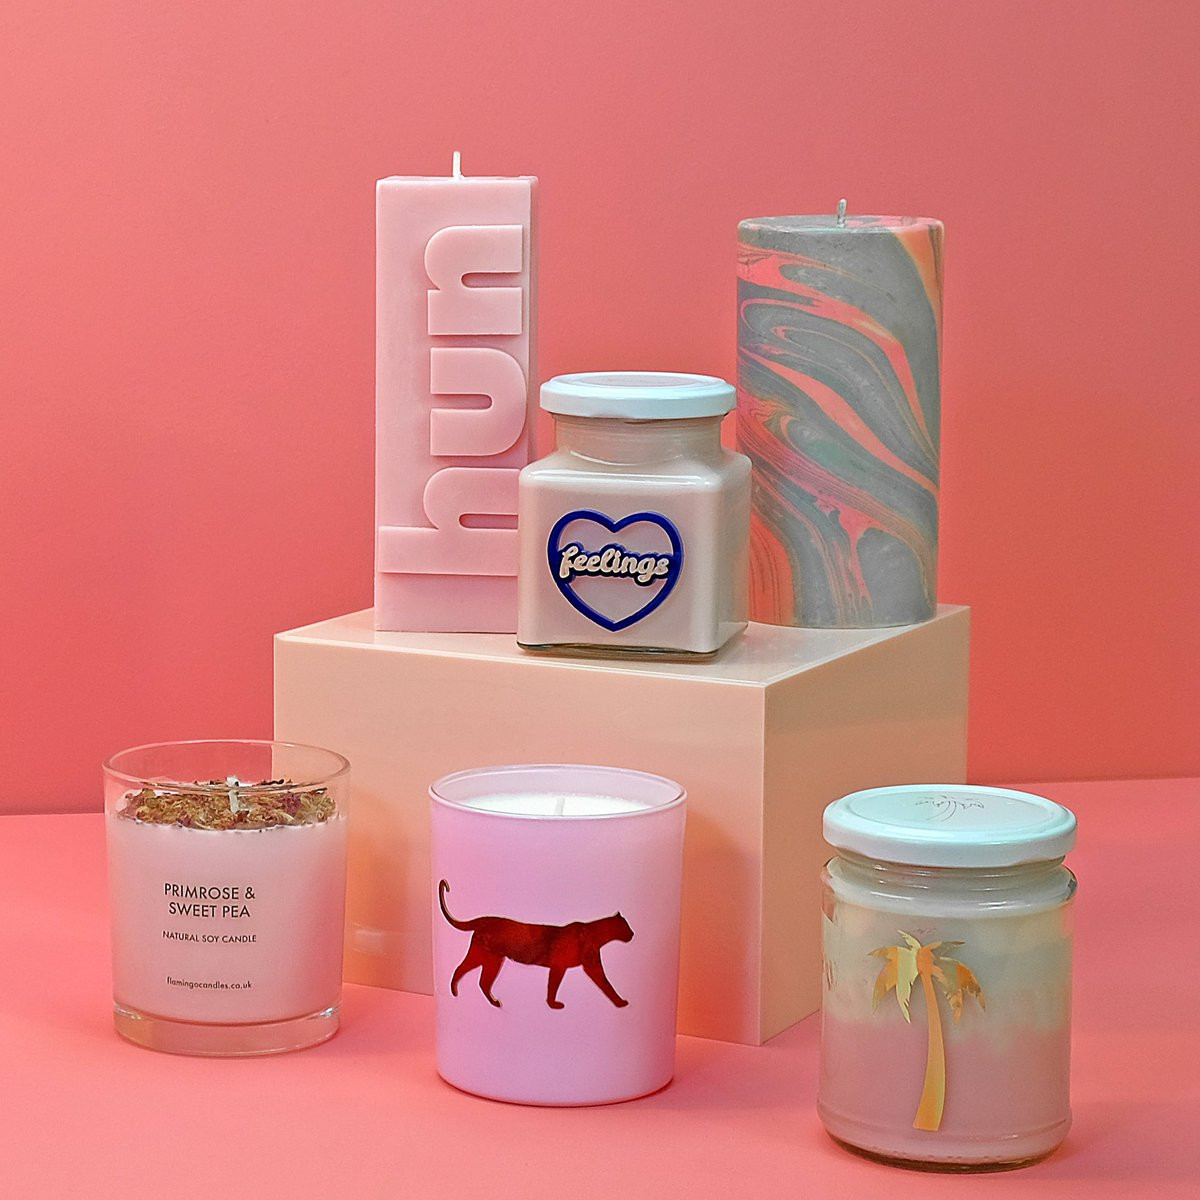 #FreebieFriday We're giving away a bundle of our Summer '19 candles For a chance to win, follow @FlamingoCandles and retweet this Closes TOMORROW #giveaway<br>http://pic.twitter.com/XndEG6iWyA